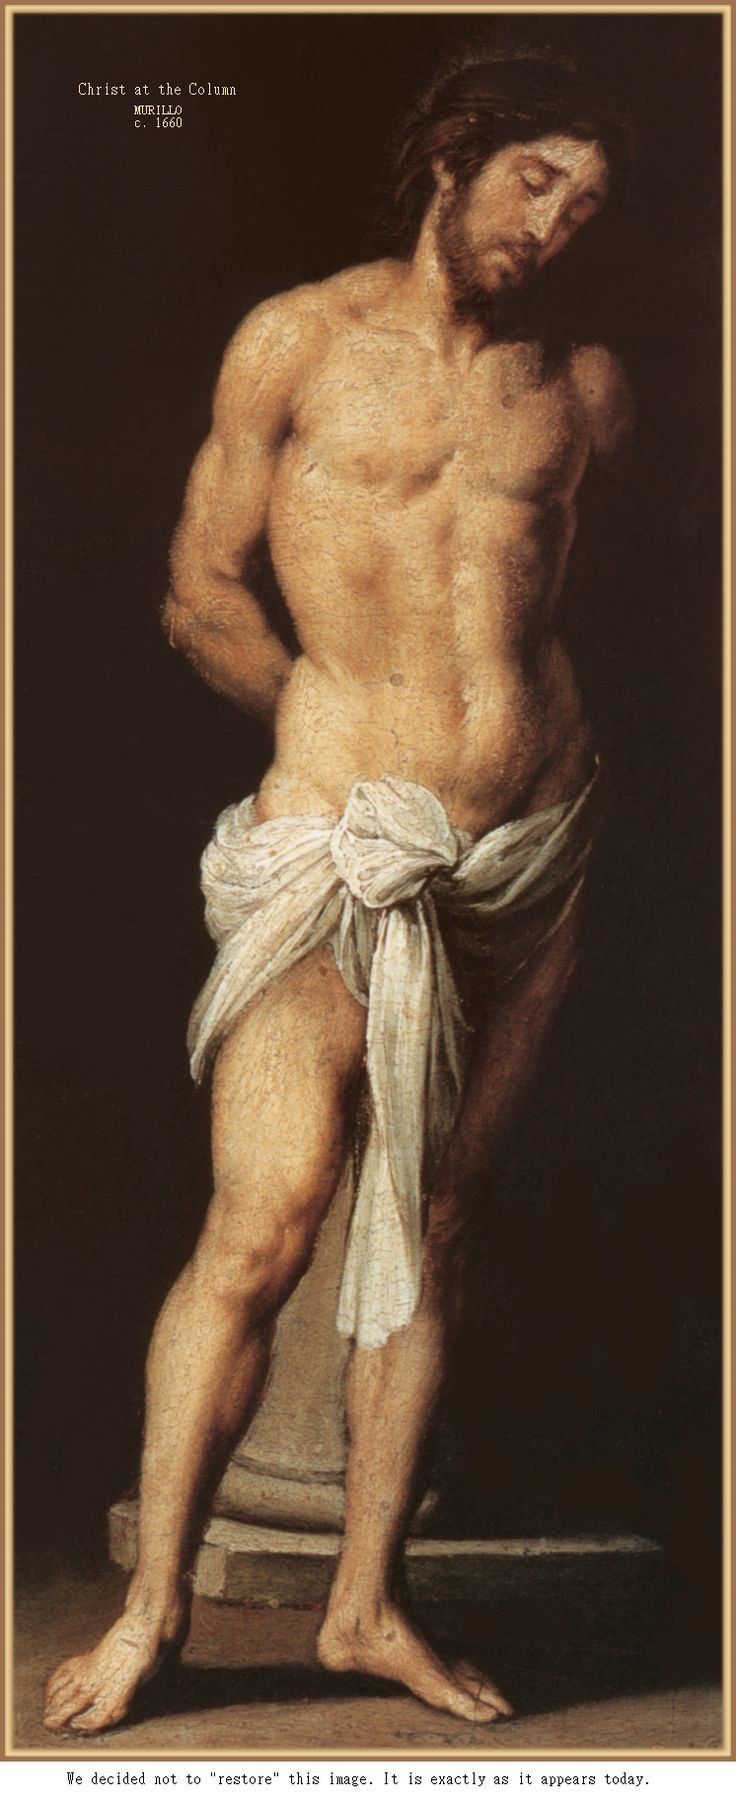 Christ at the Column, Murillo